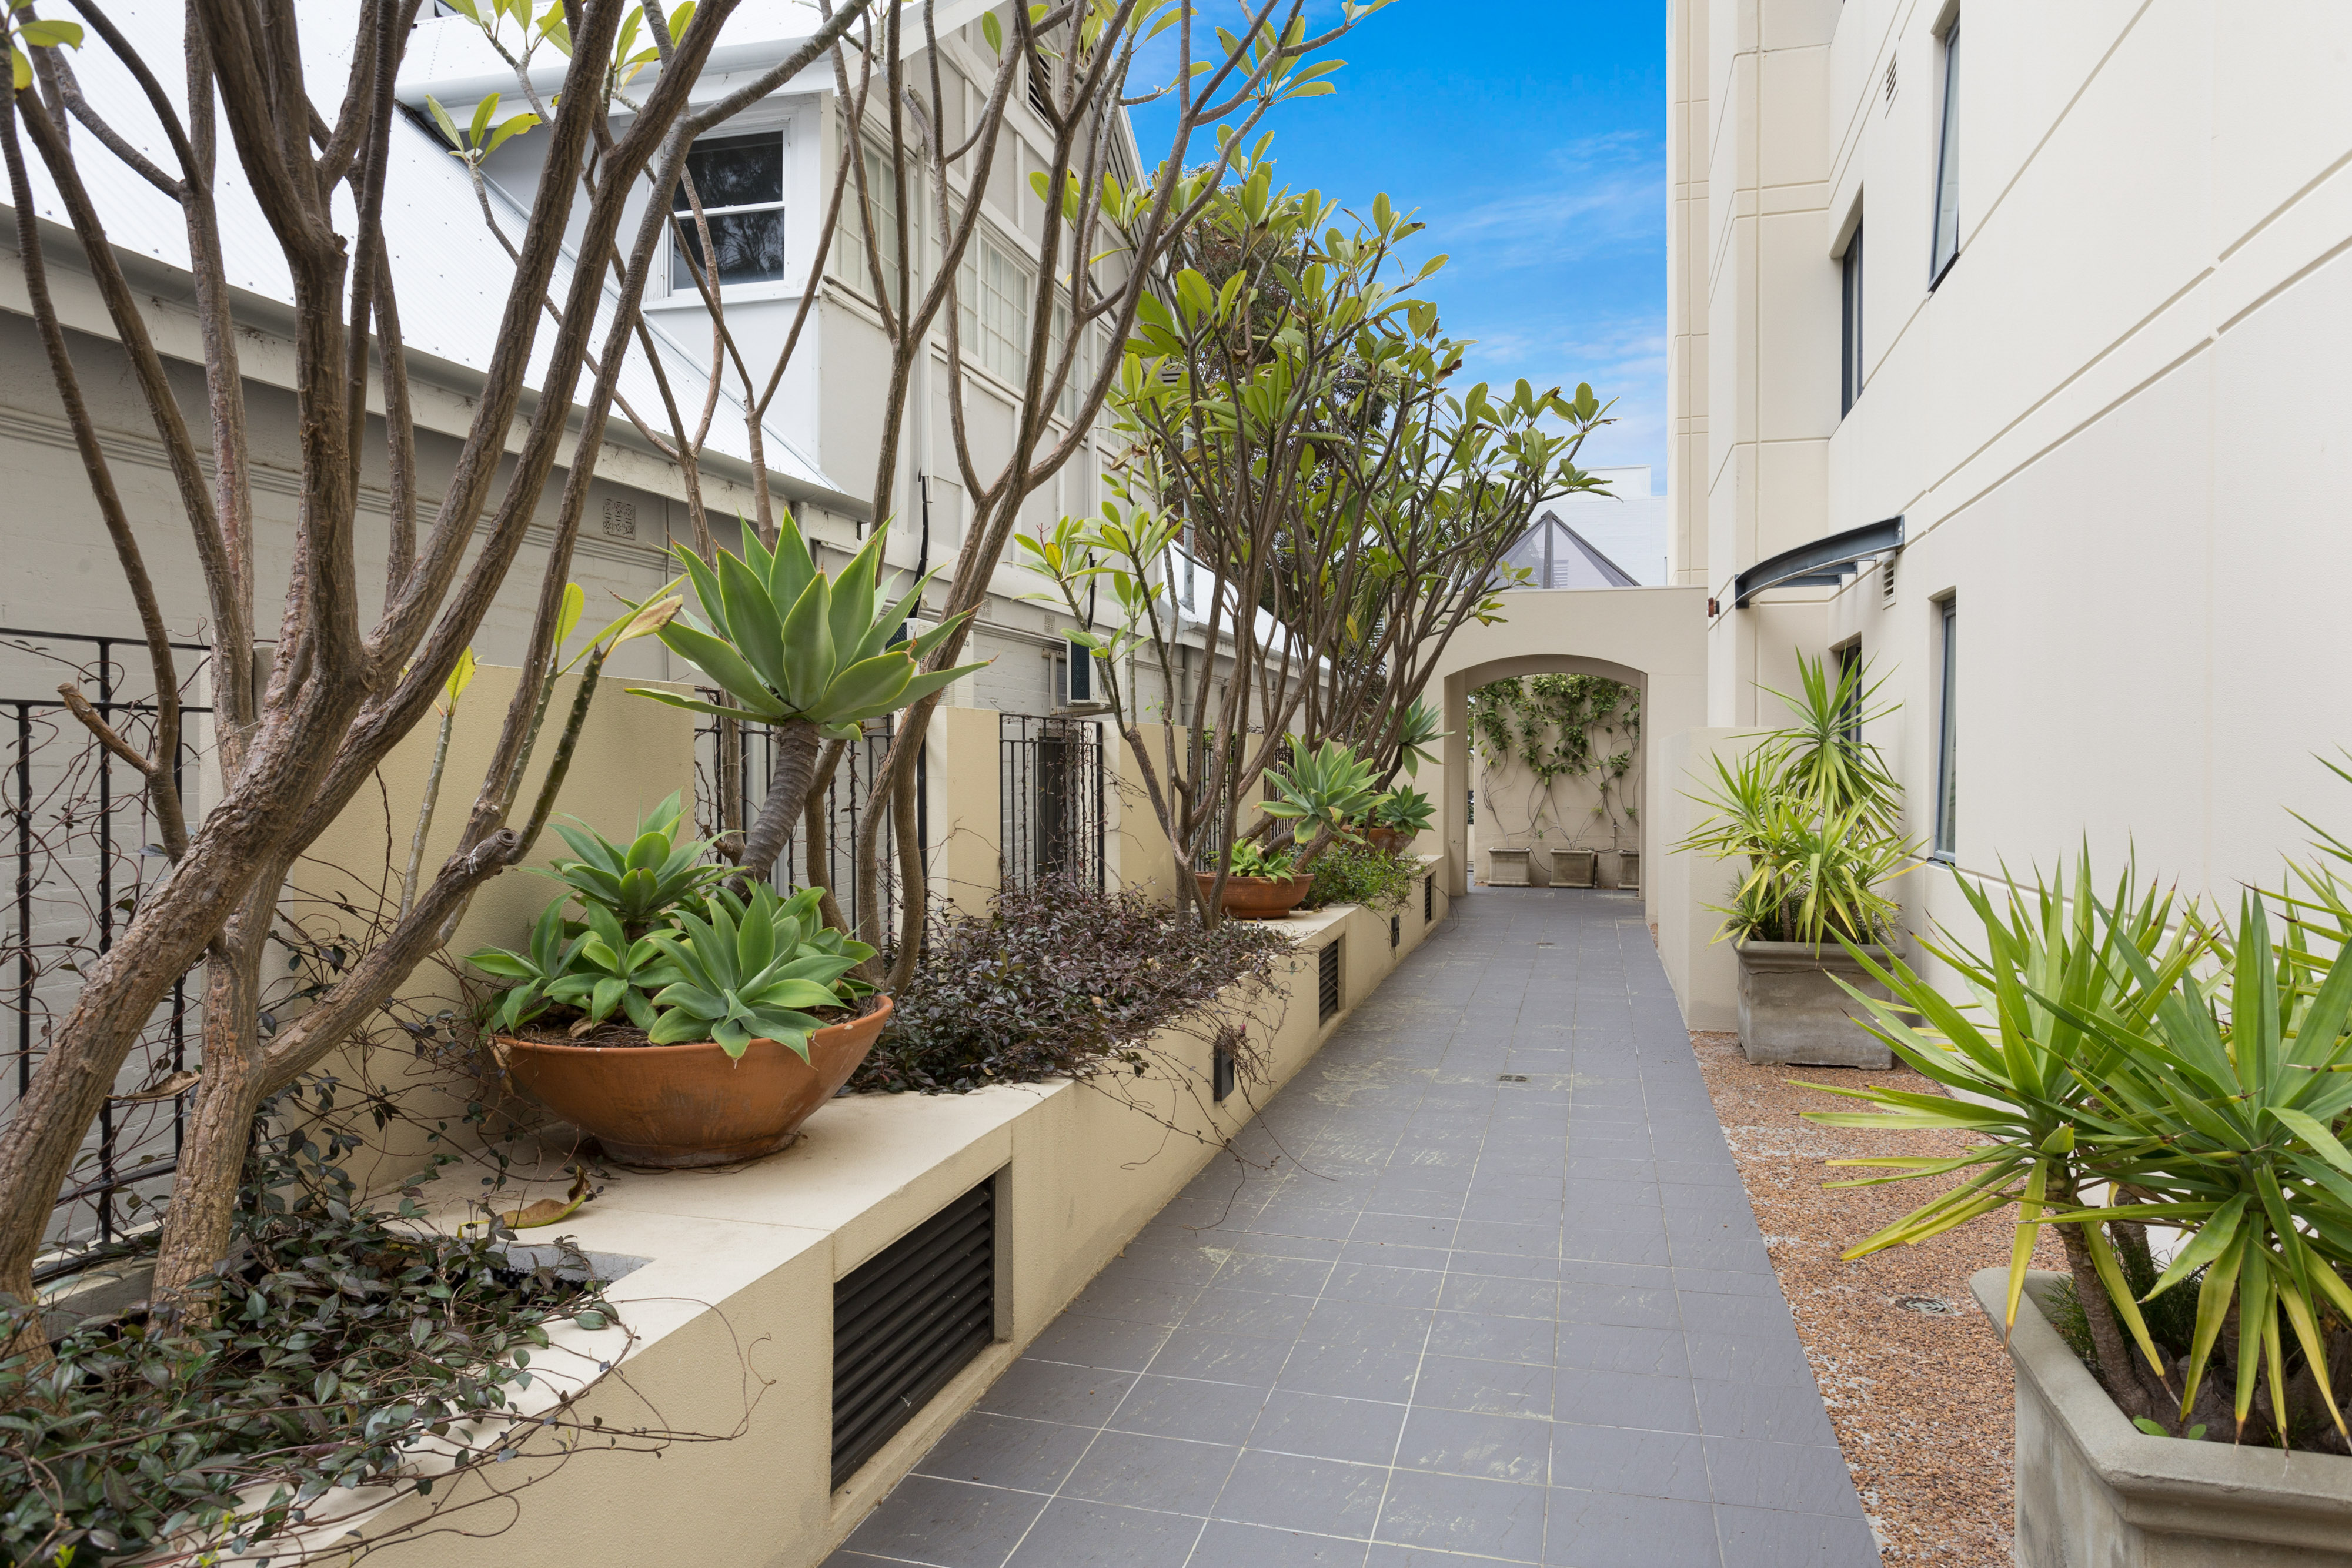 PRINT 1 2 Outram Street West Perth 22